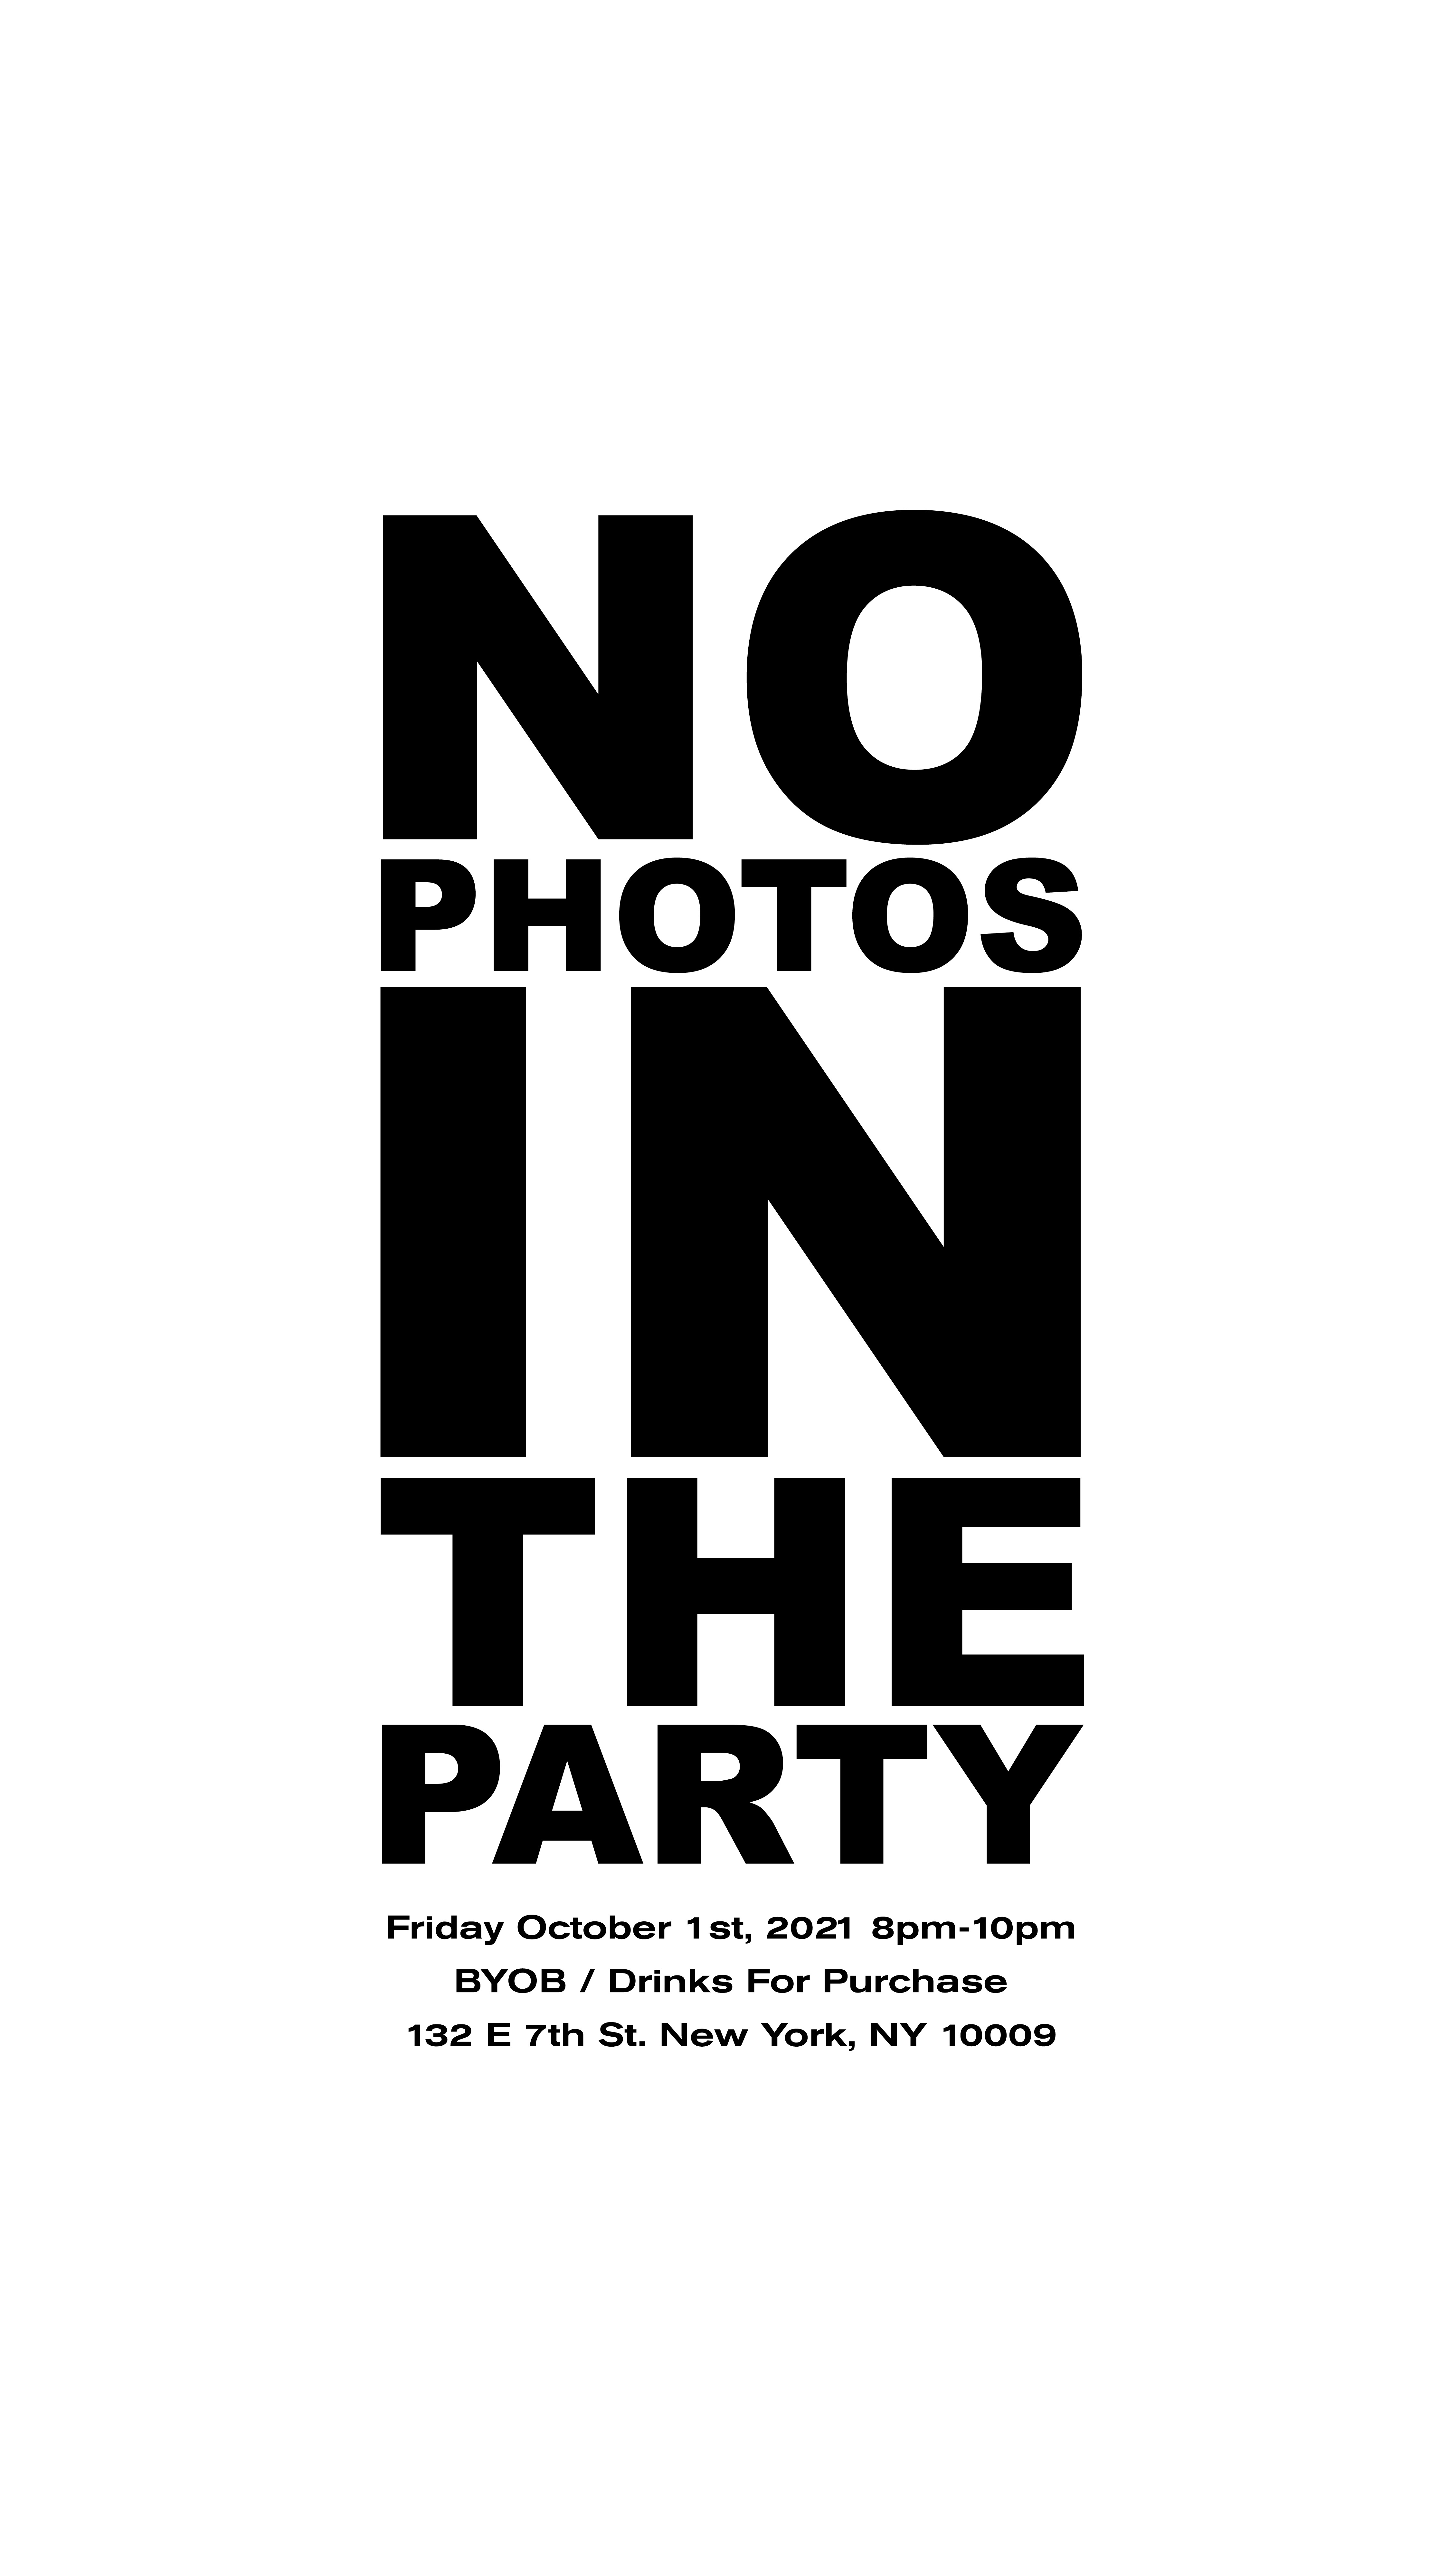 image party flyer